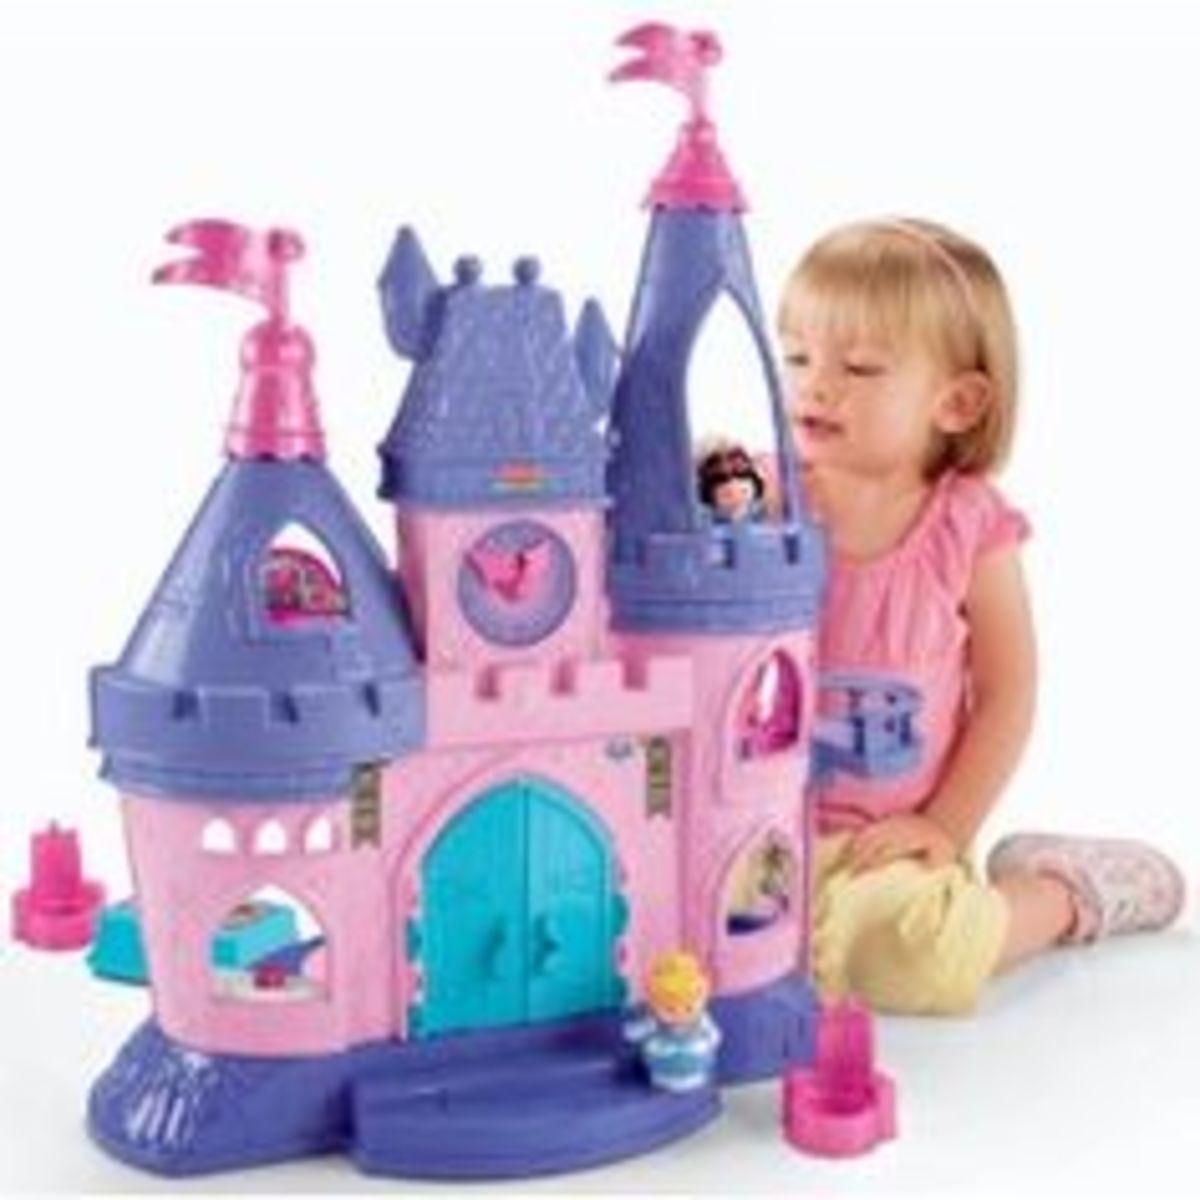 Special Toys For Girls : Best christmas gift ideas for a year old baby girl